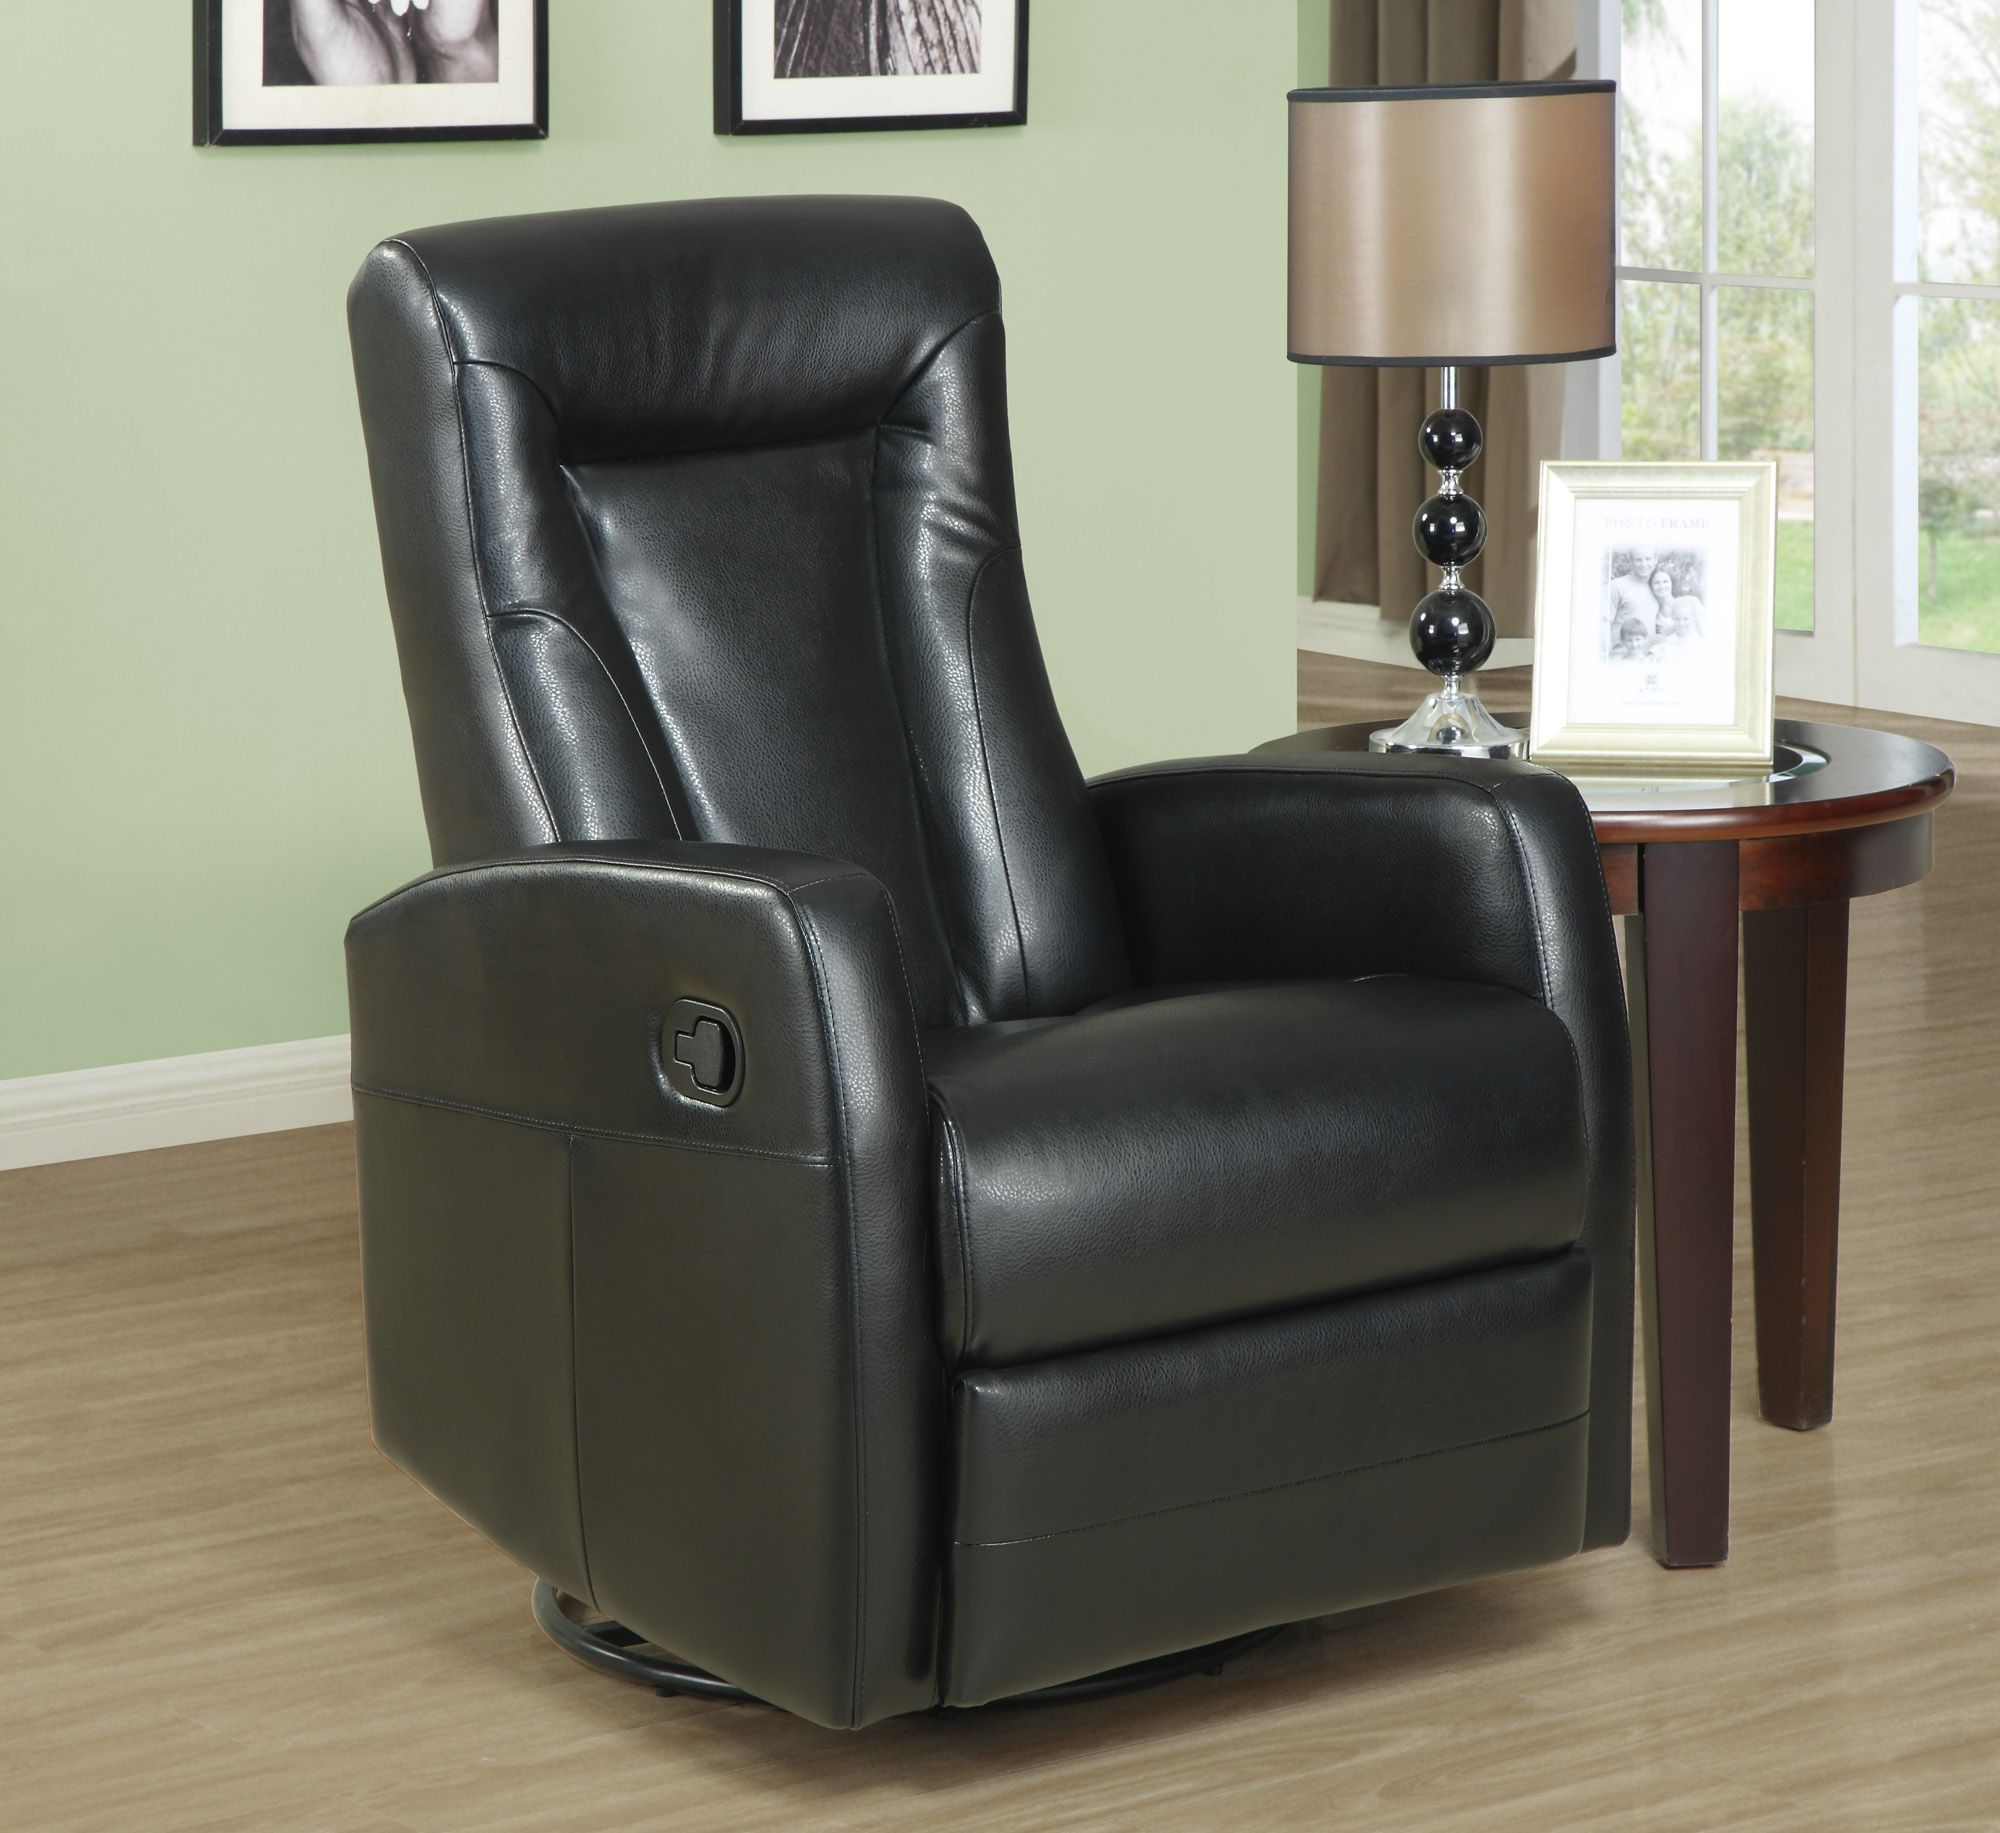 Monarch Specialties Recliner Swivel Rocker Black Bonded Leather Fabric Home Furniture